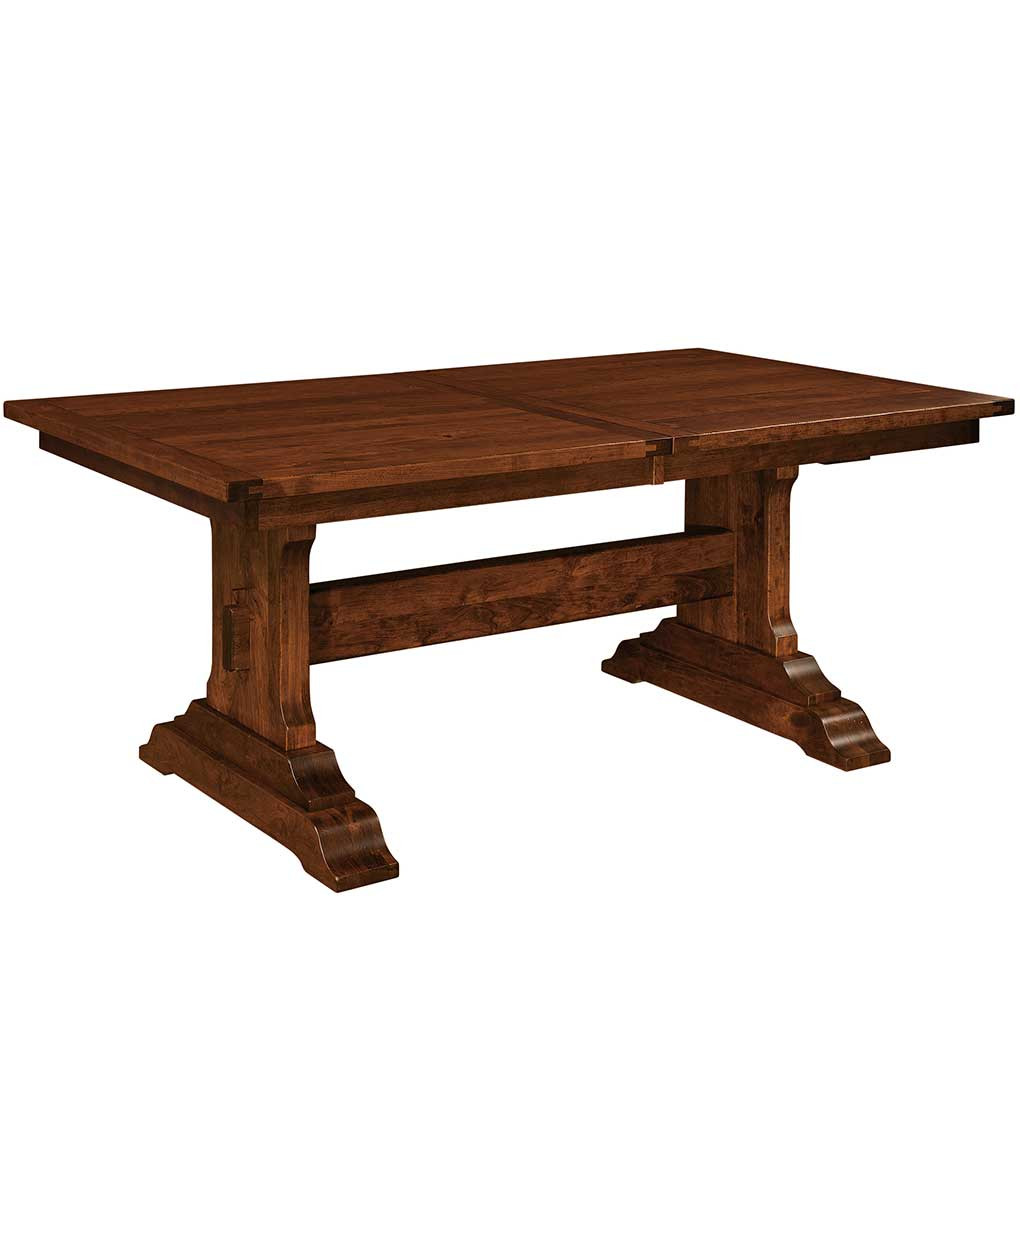 Best ideas about Trestle Dining Table . Save or Pin Manchester Trestle Dining Table Amish Direct Furniture Now.